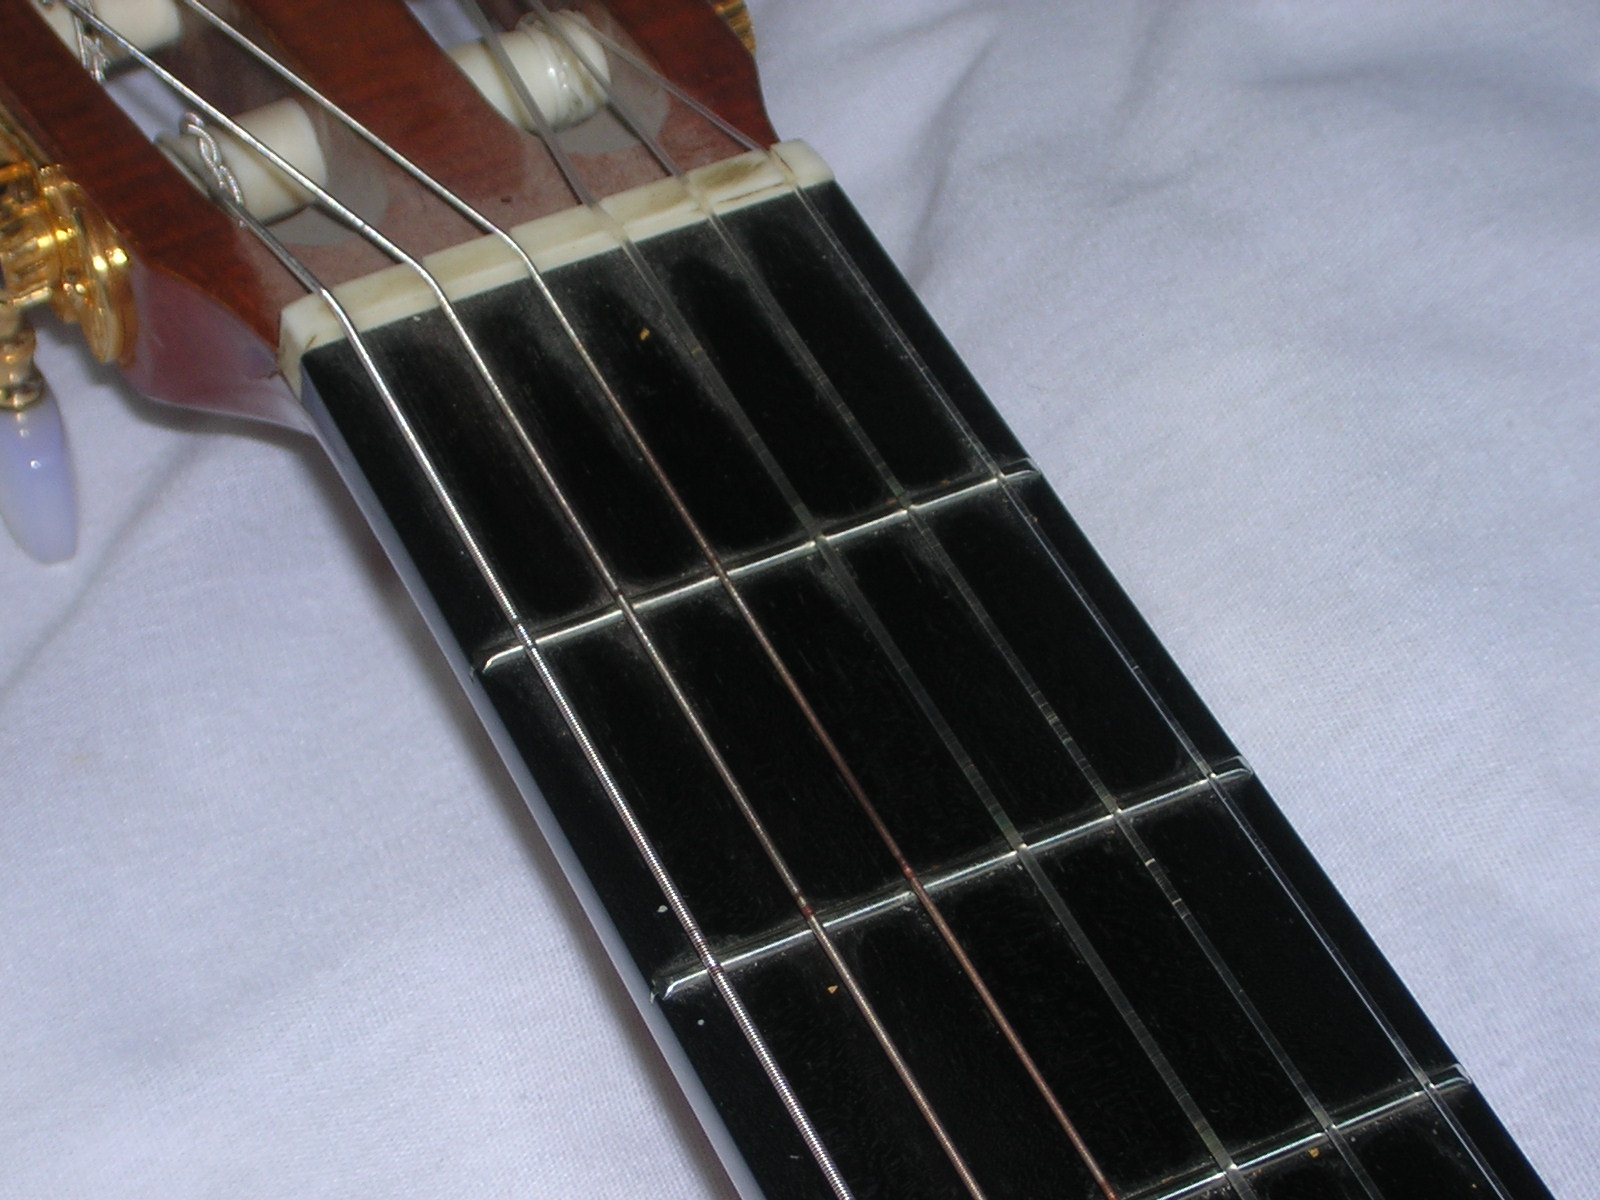 How To Change Guitar Strings Cgsmusic